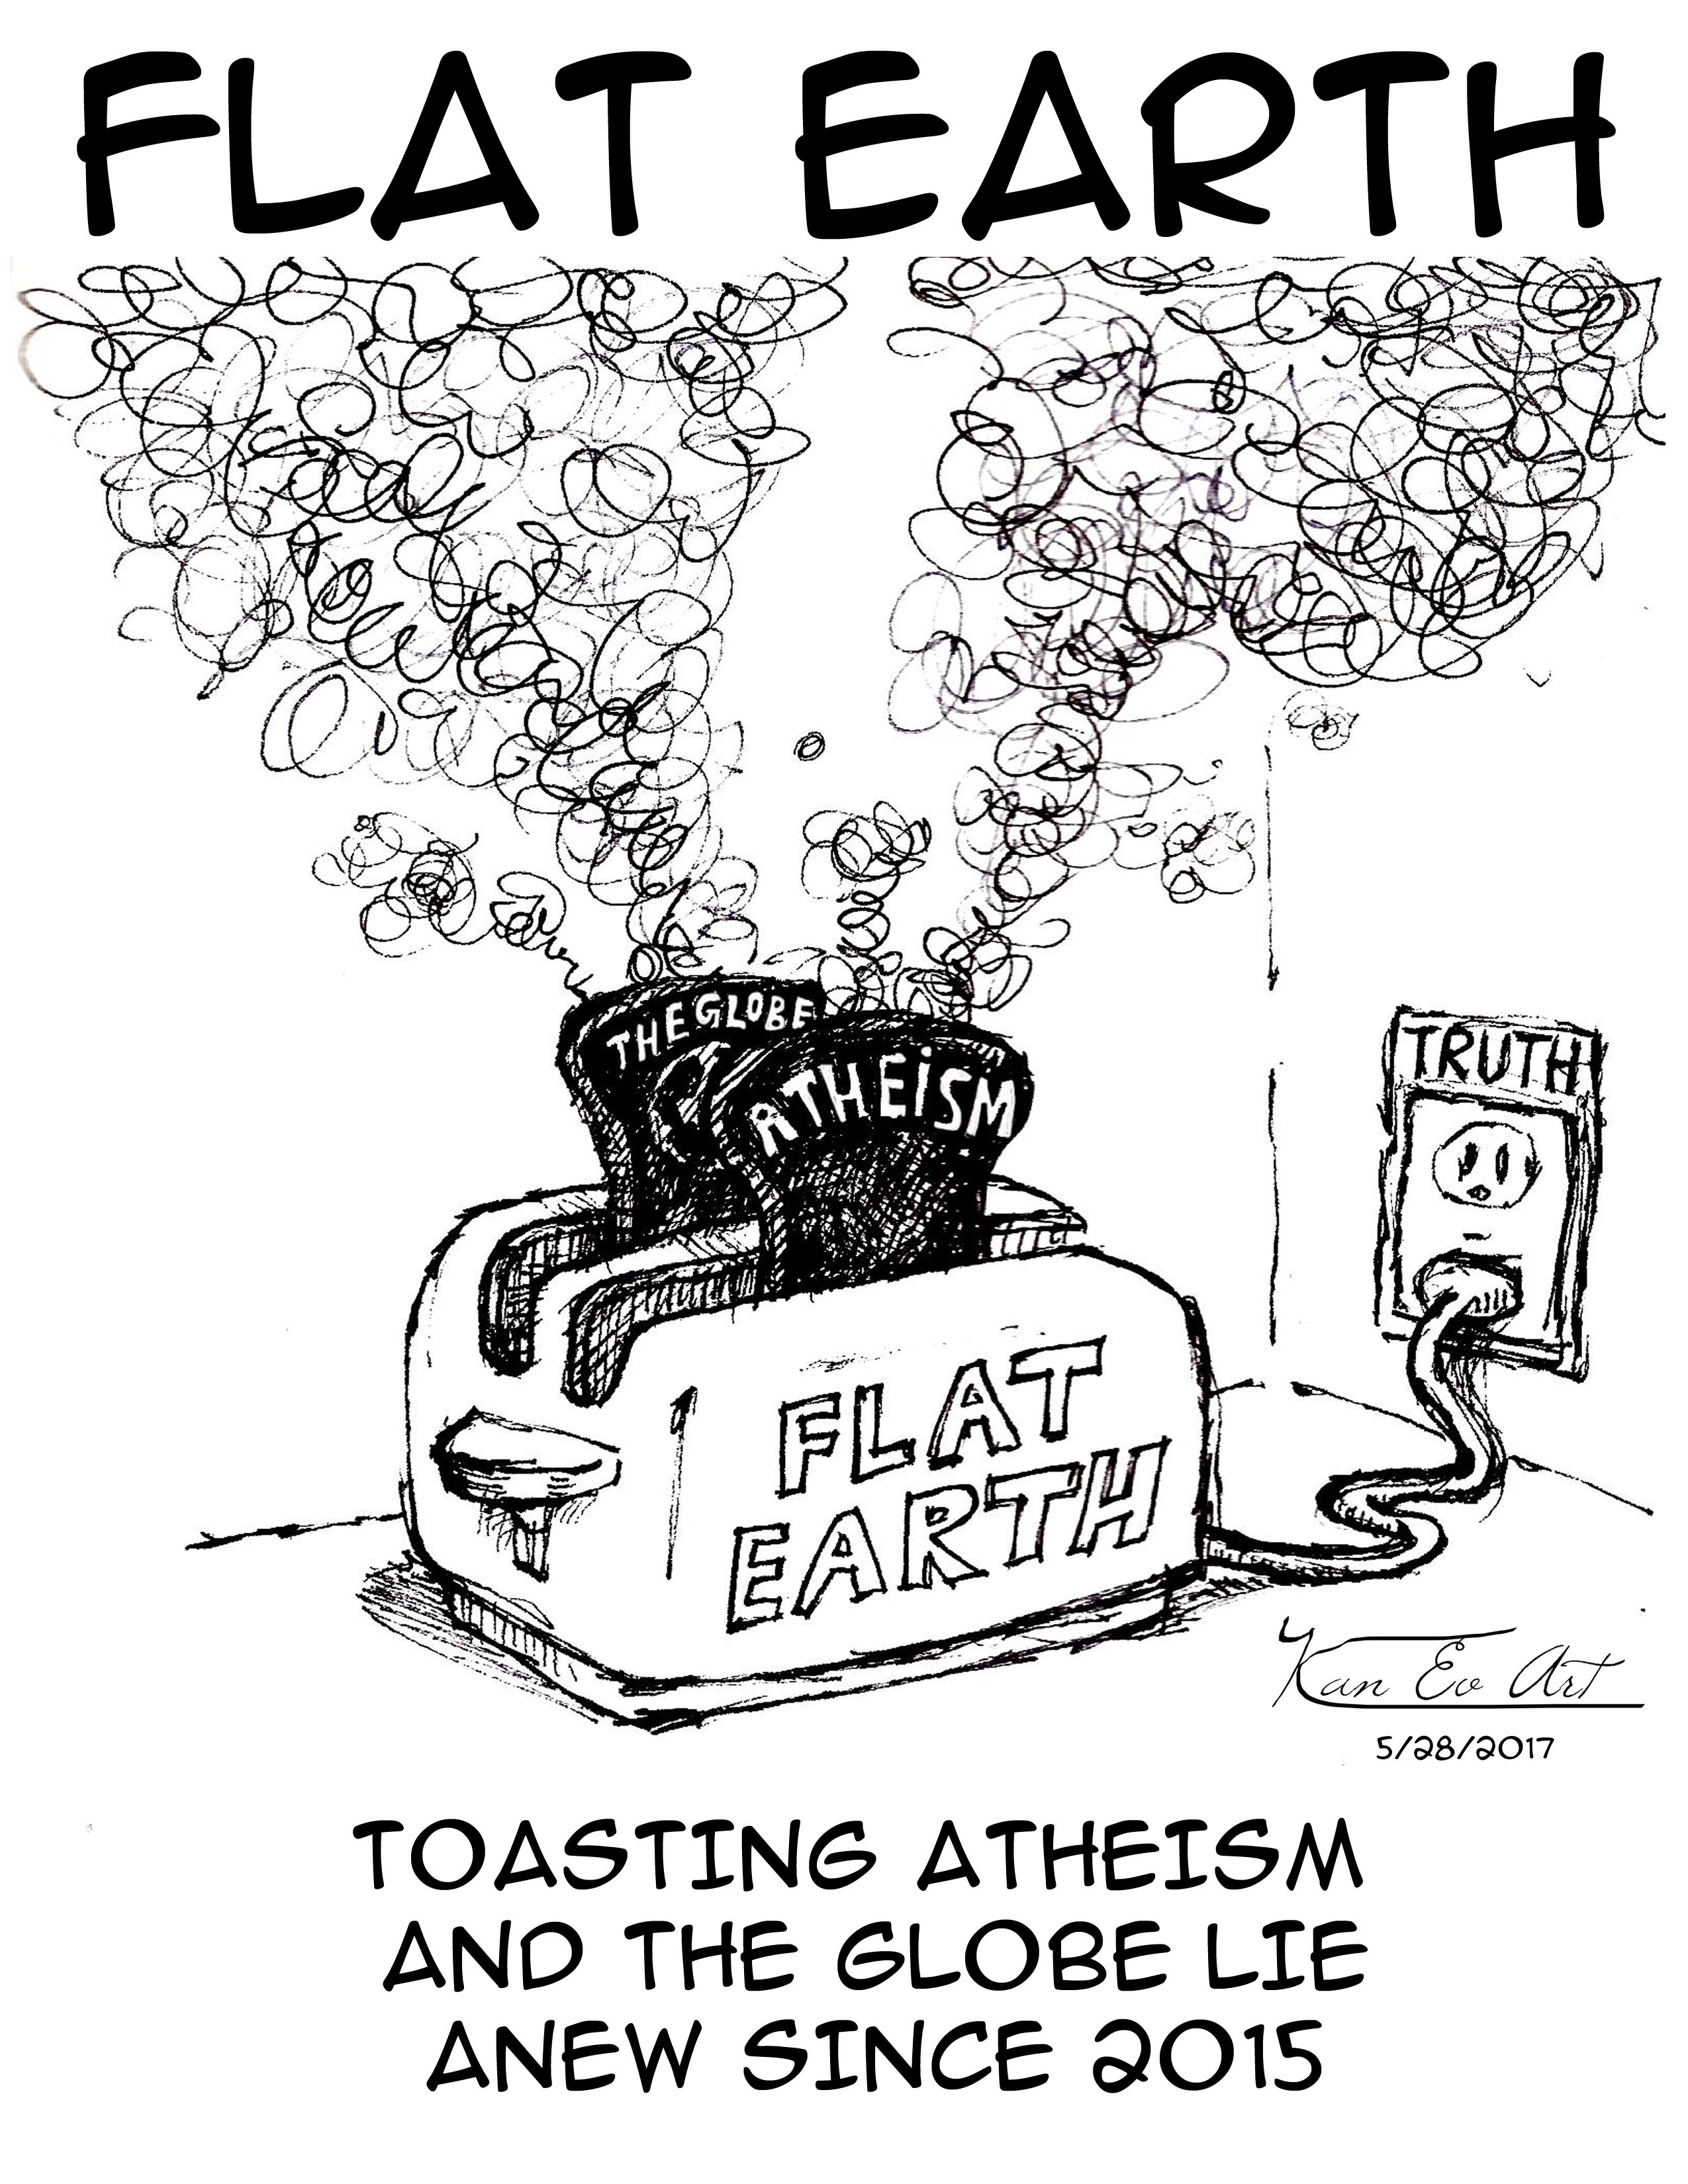 Nothing toast atheism and the globe lie like the Truth of